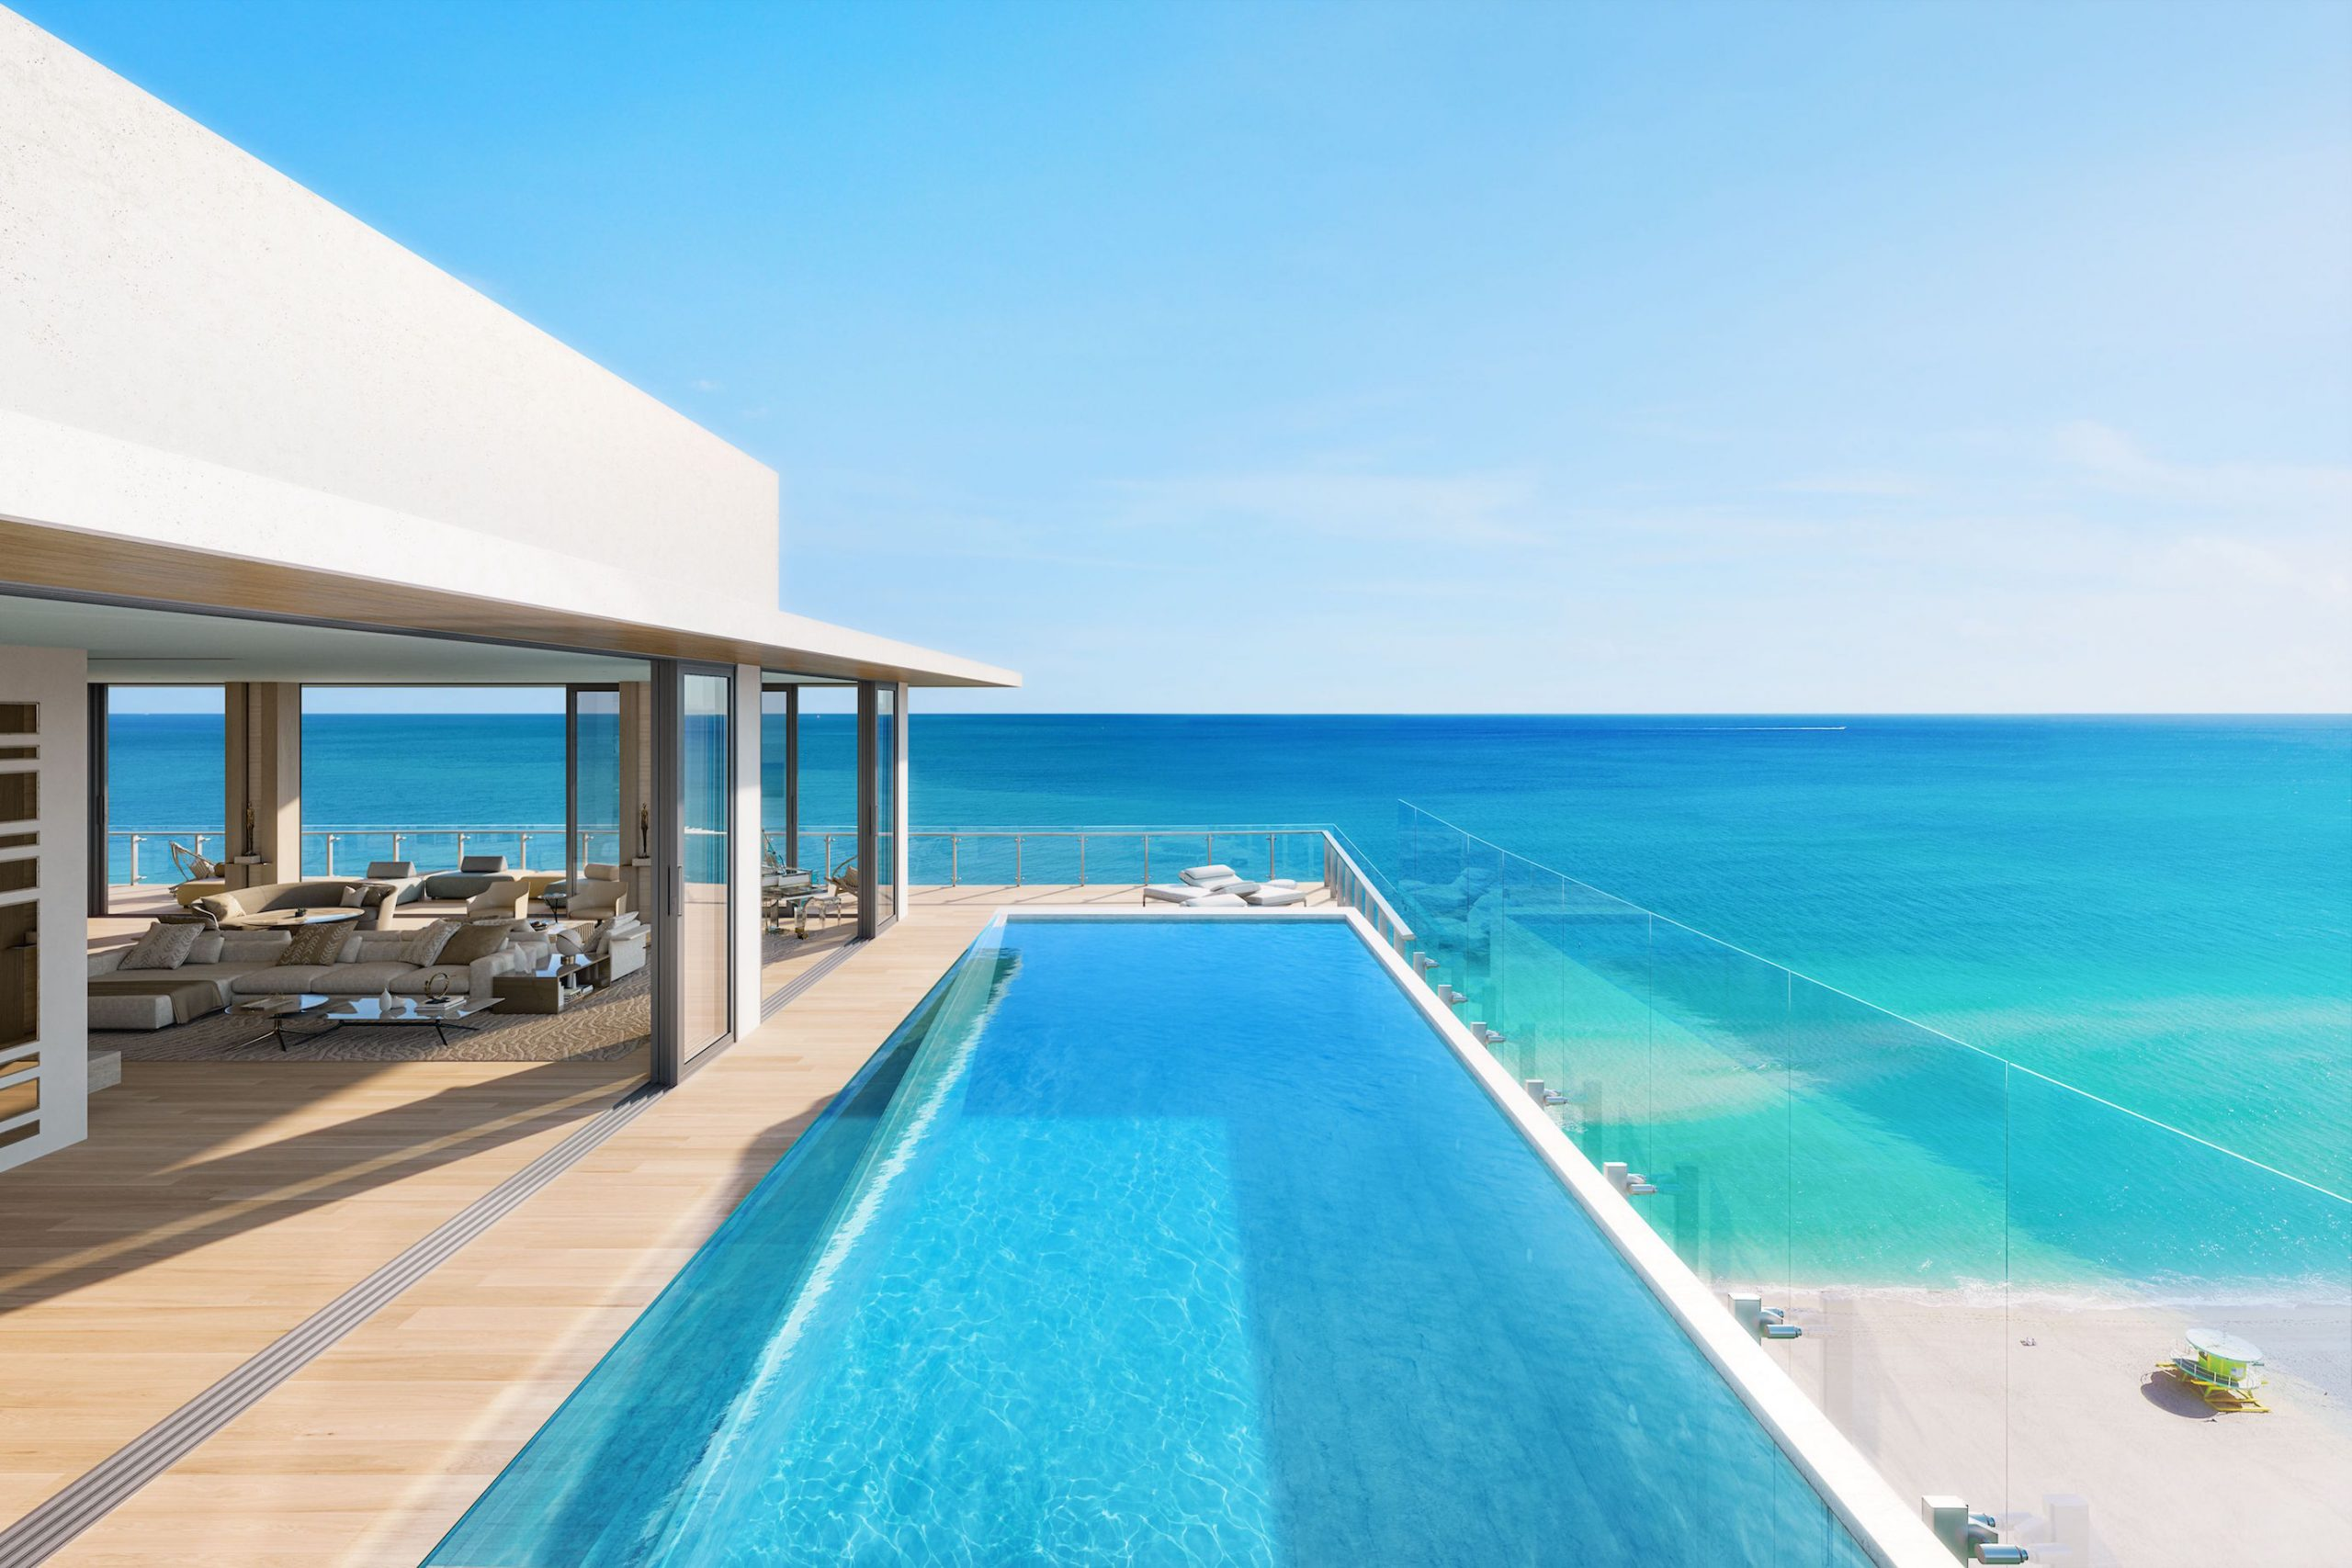 57 Ocean penthouse with rooftop pool